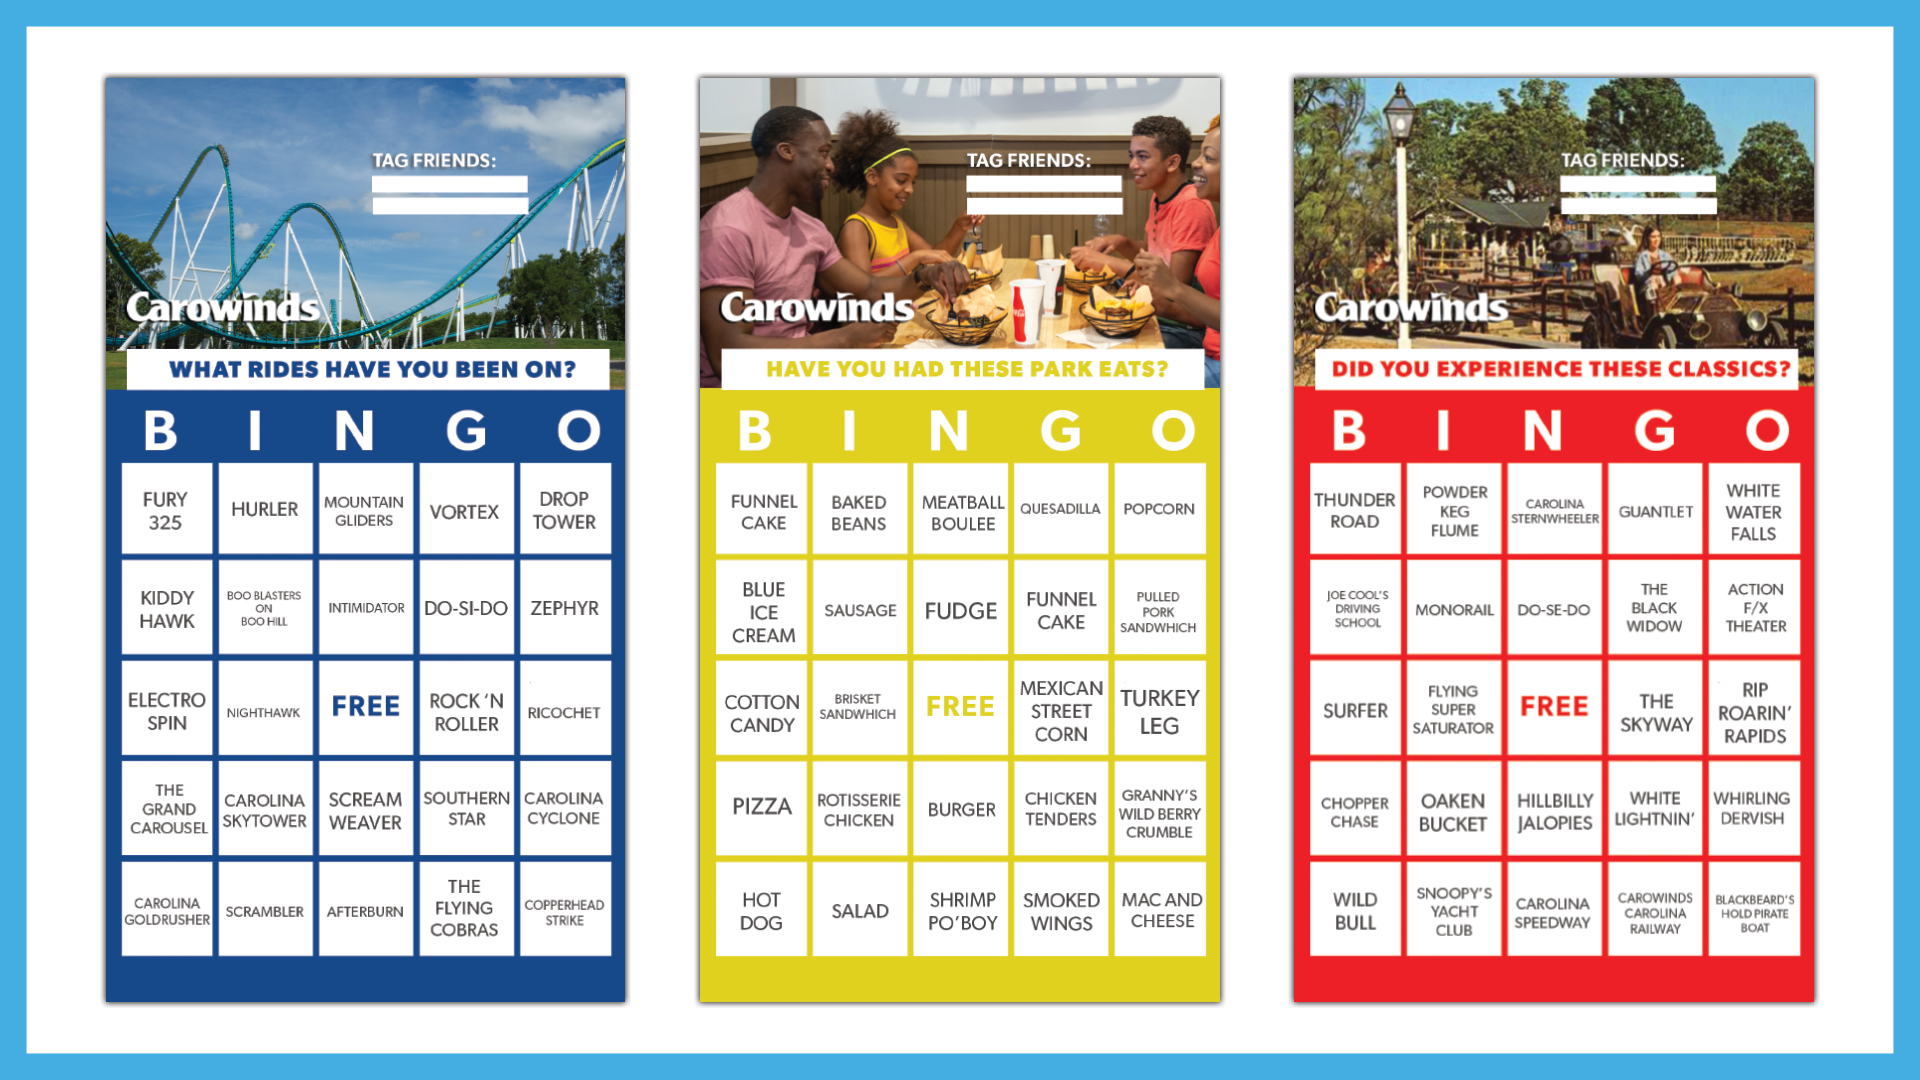 Carowinds Bingo - Carowinds with regard to Turning Stone Bingo Calendar 2021 November